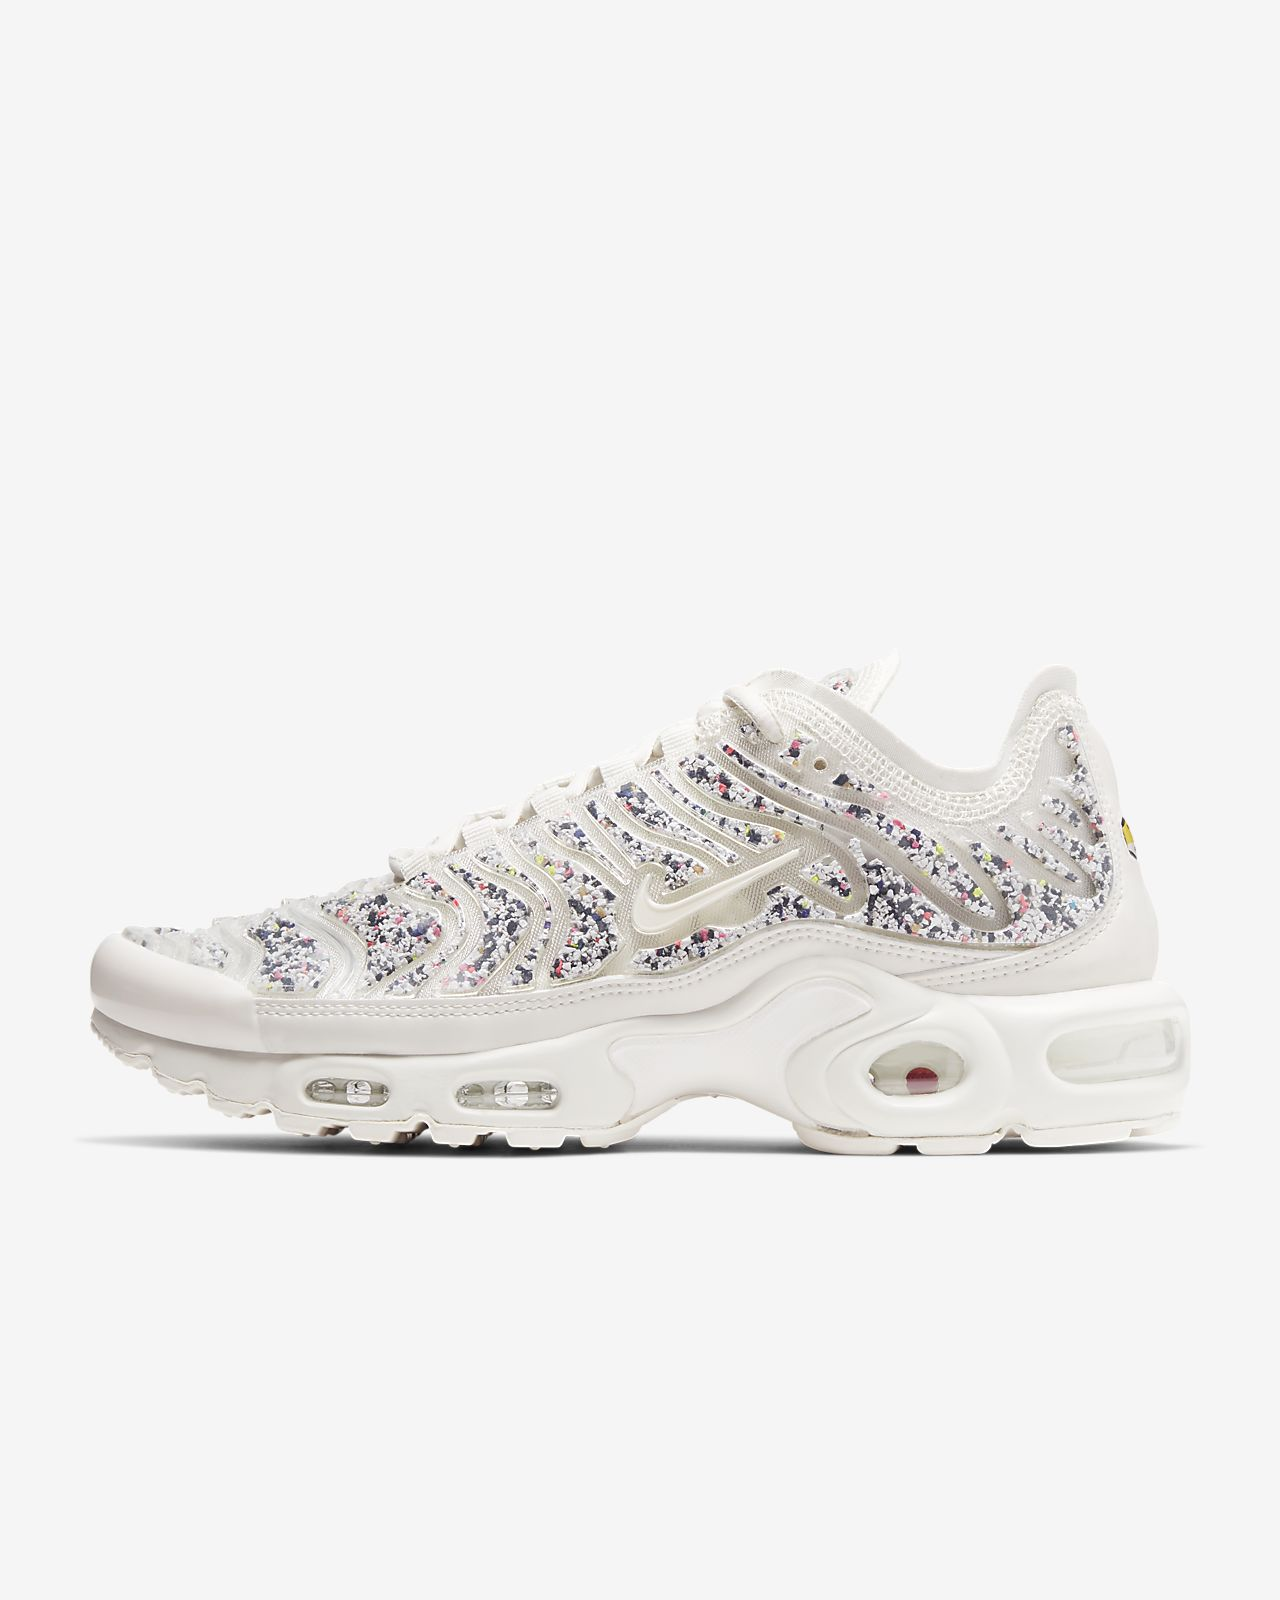 Nike Air Max Plus LX Women's Shoe